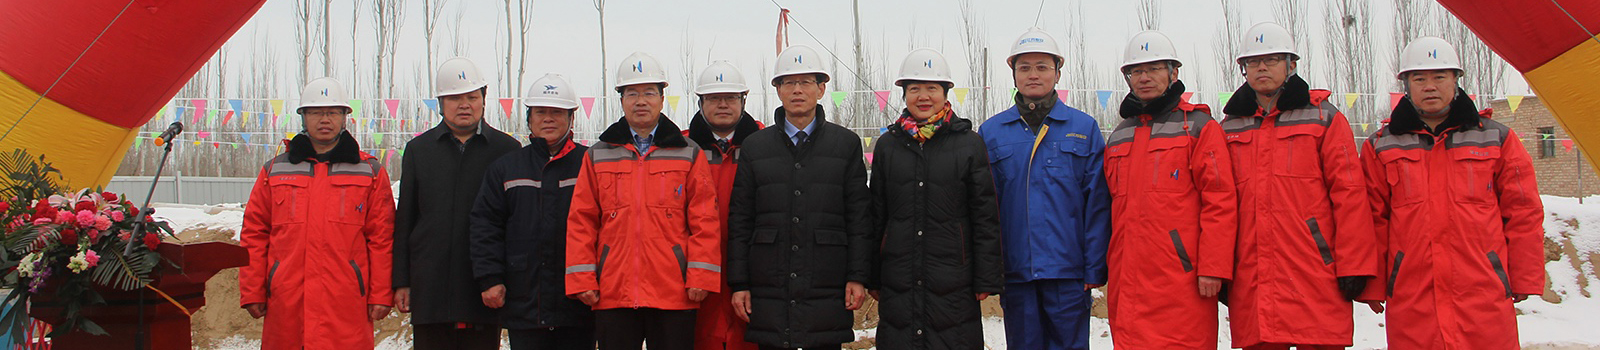 Project from Hangjinqi to Yinchuan started drilling